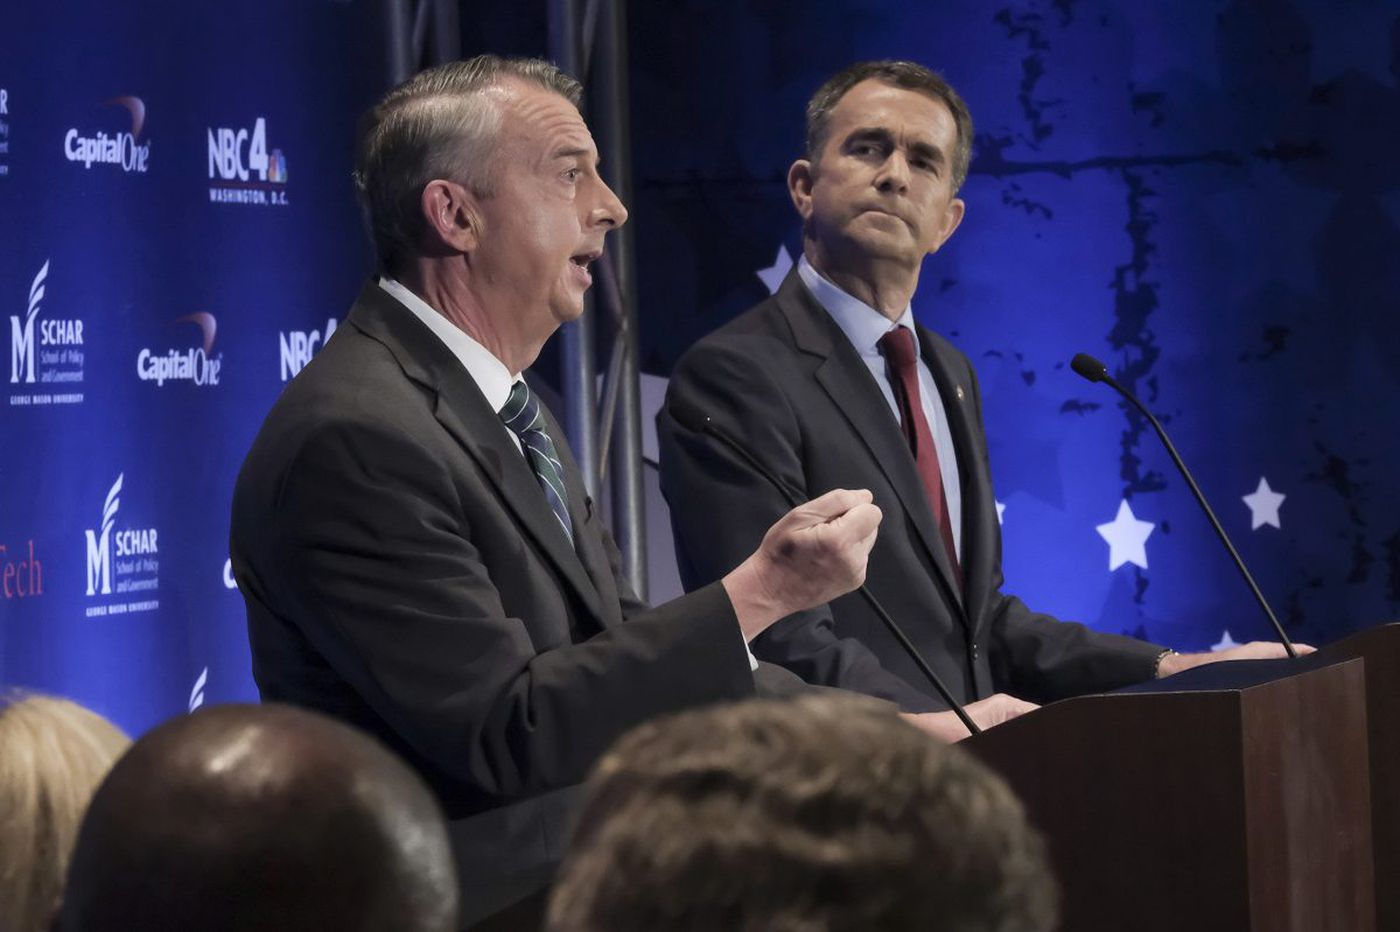 Virginia voters will speak for the nation | Opinion